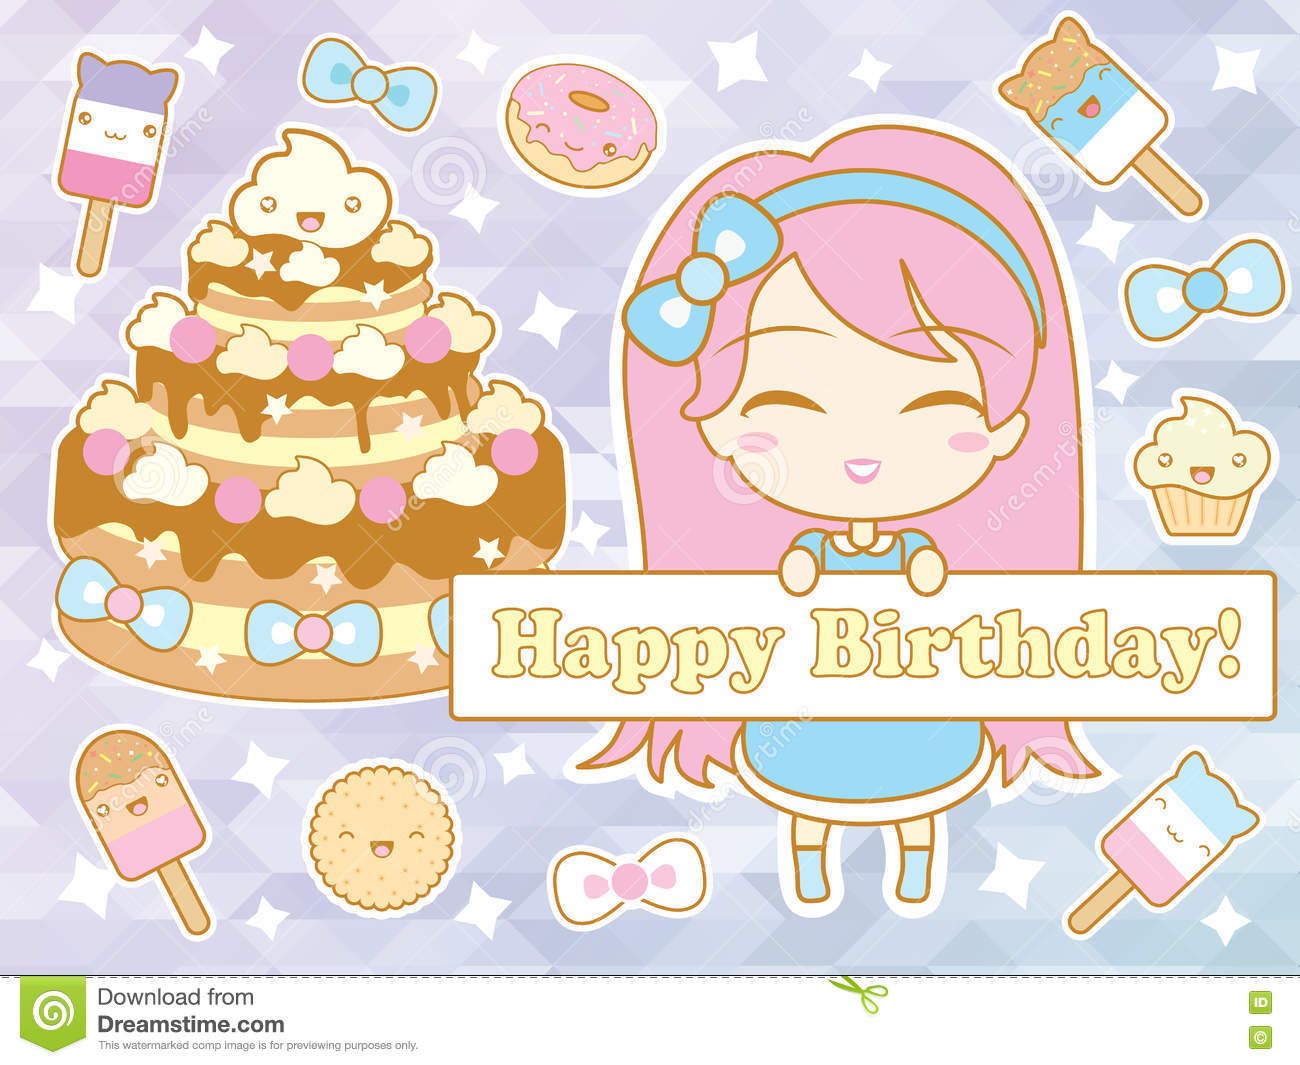 Happy Birthday Card With Cute Smiling Cartoon Chibi Girl Stock